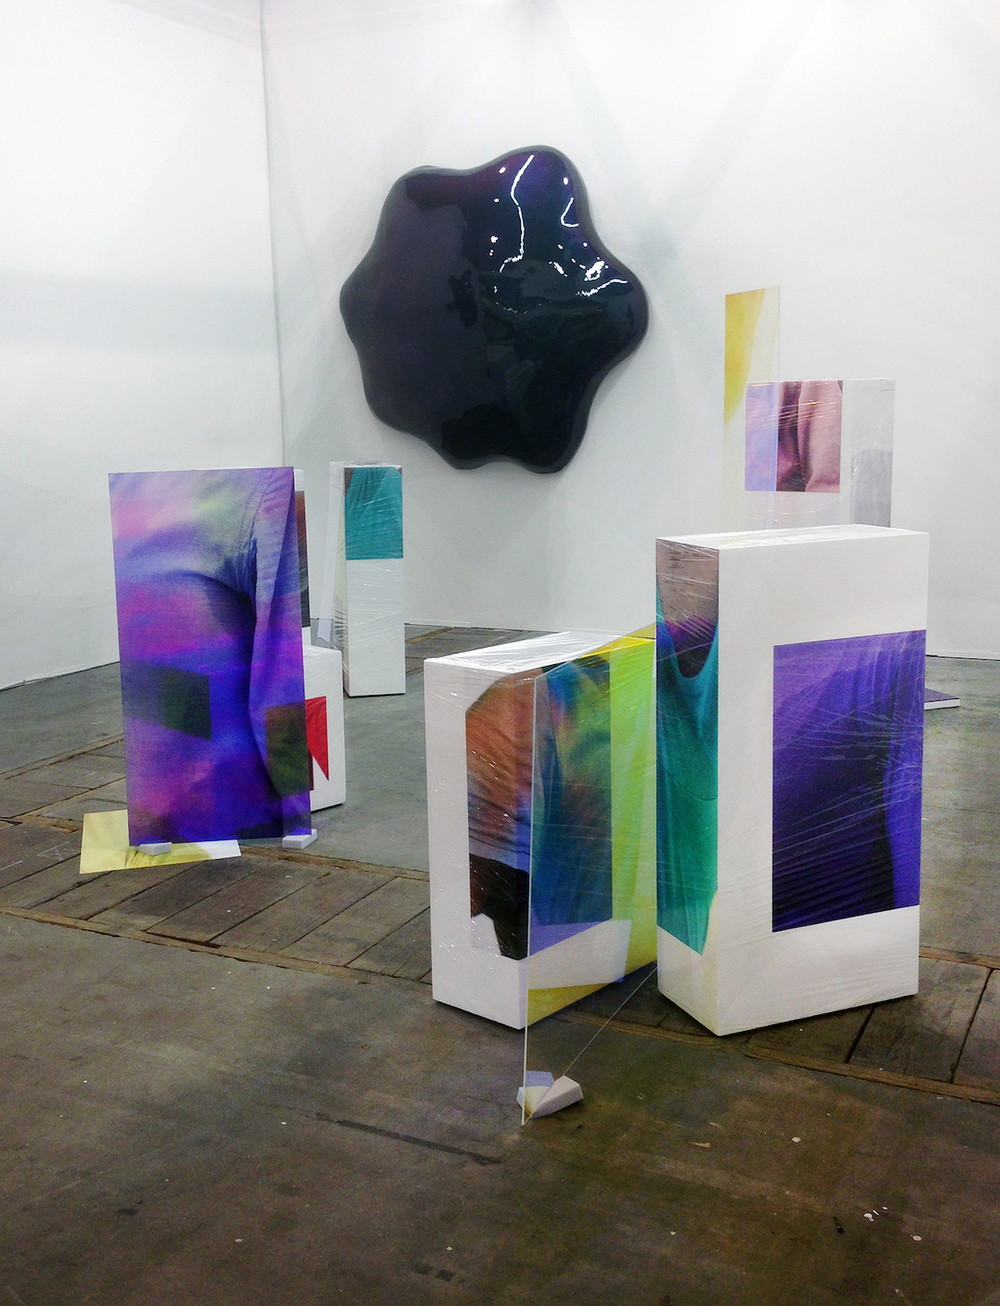 Sweaty Sculptures with works of  Bob Eikelboom at BoetzelaerINispen at Art Bruxelles 2015